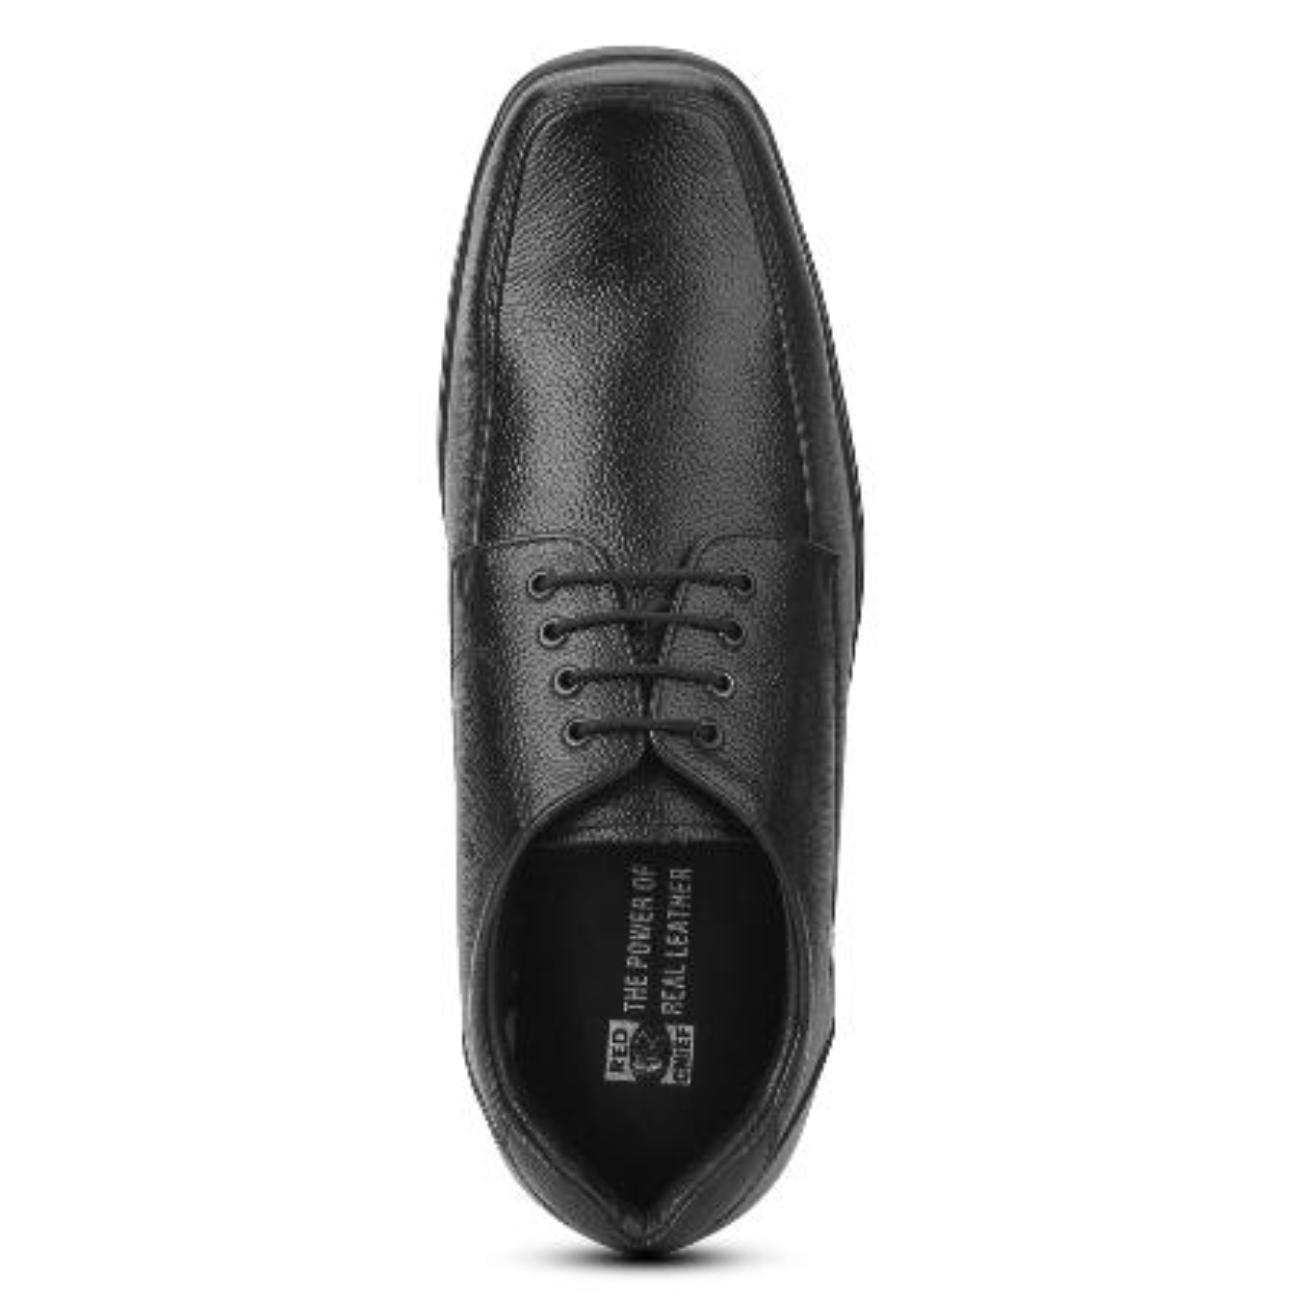 black formal shoes top view